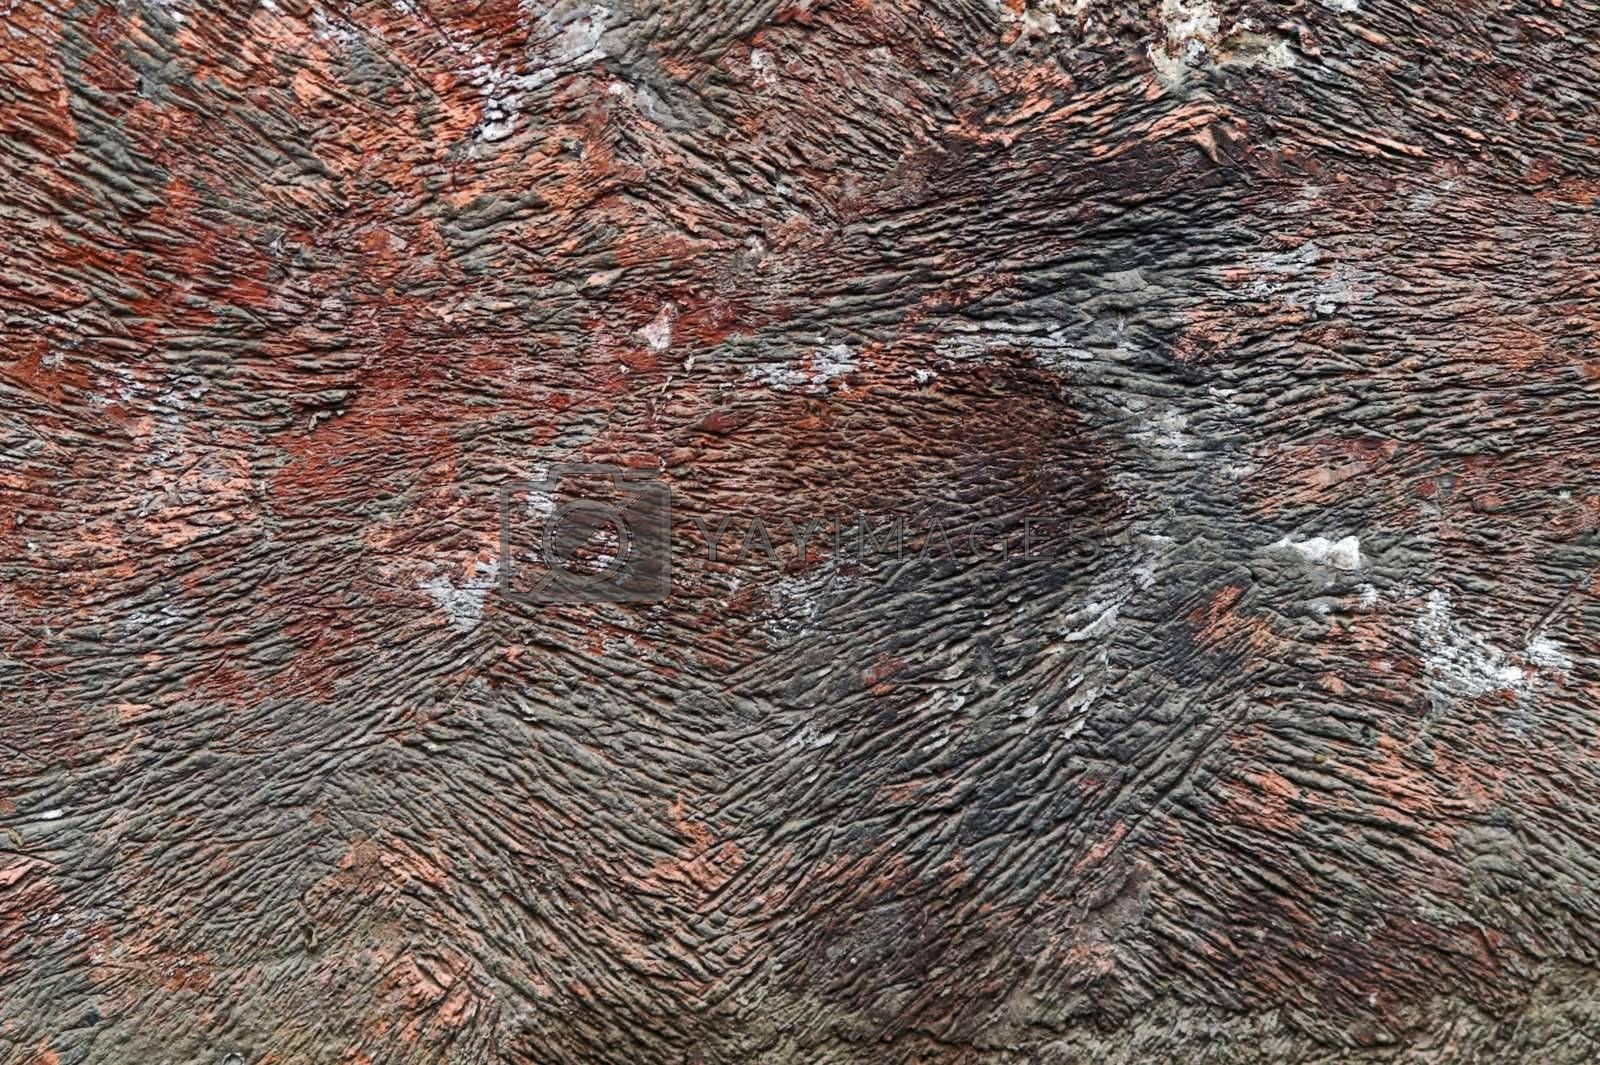 Red-colored corroded wall with surface ridges